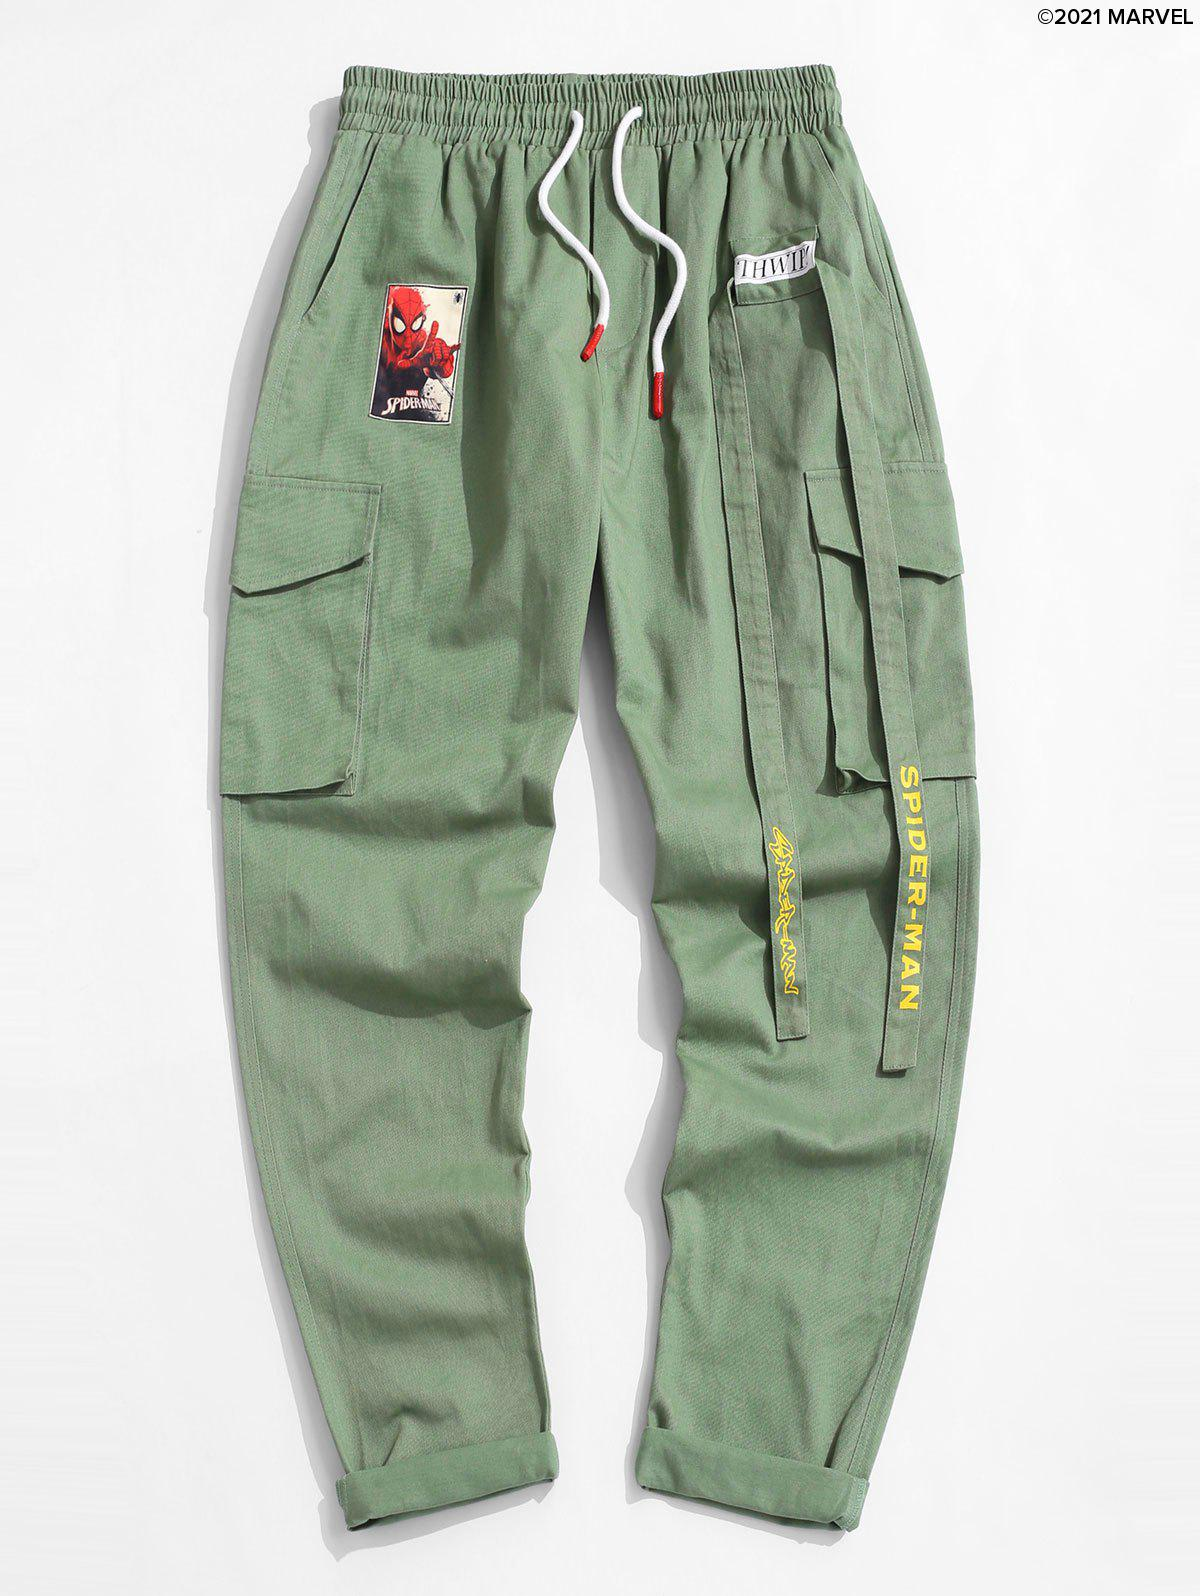 Trendy Marvel Spider-Man Patched Cargo Pants